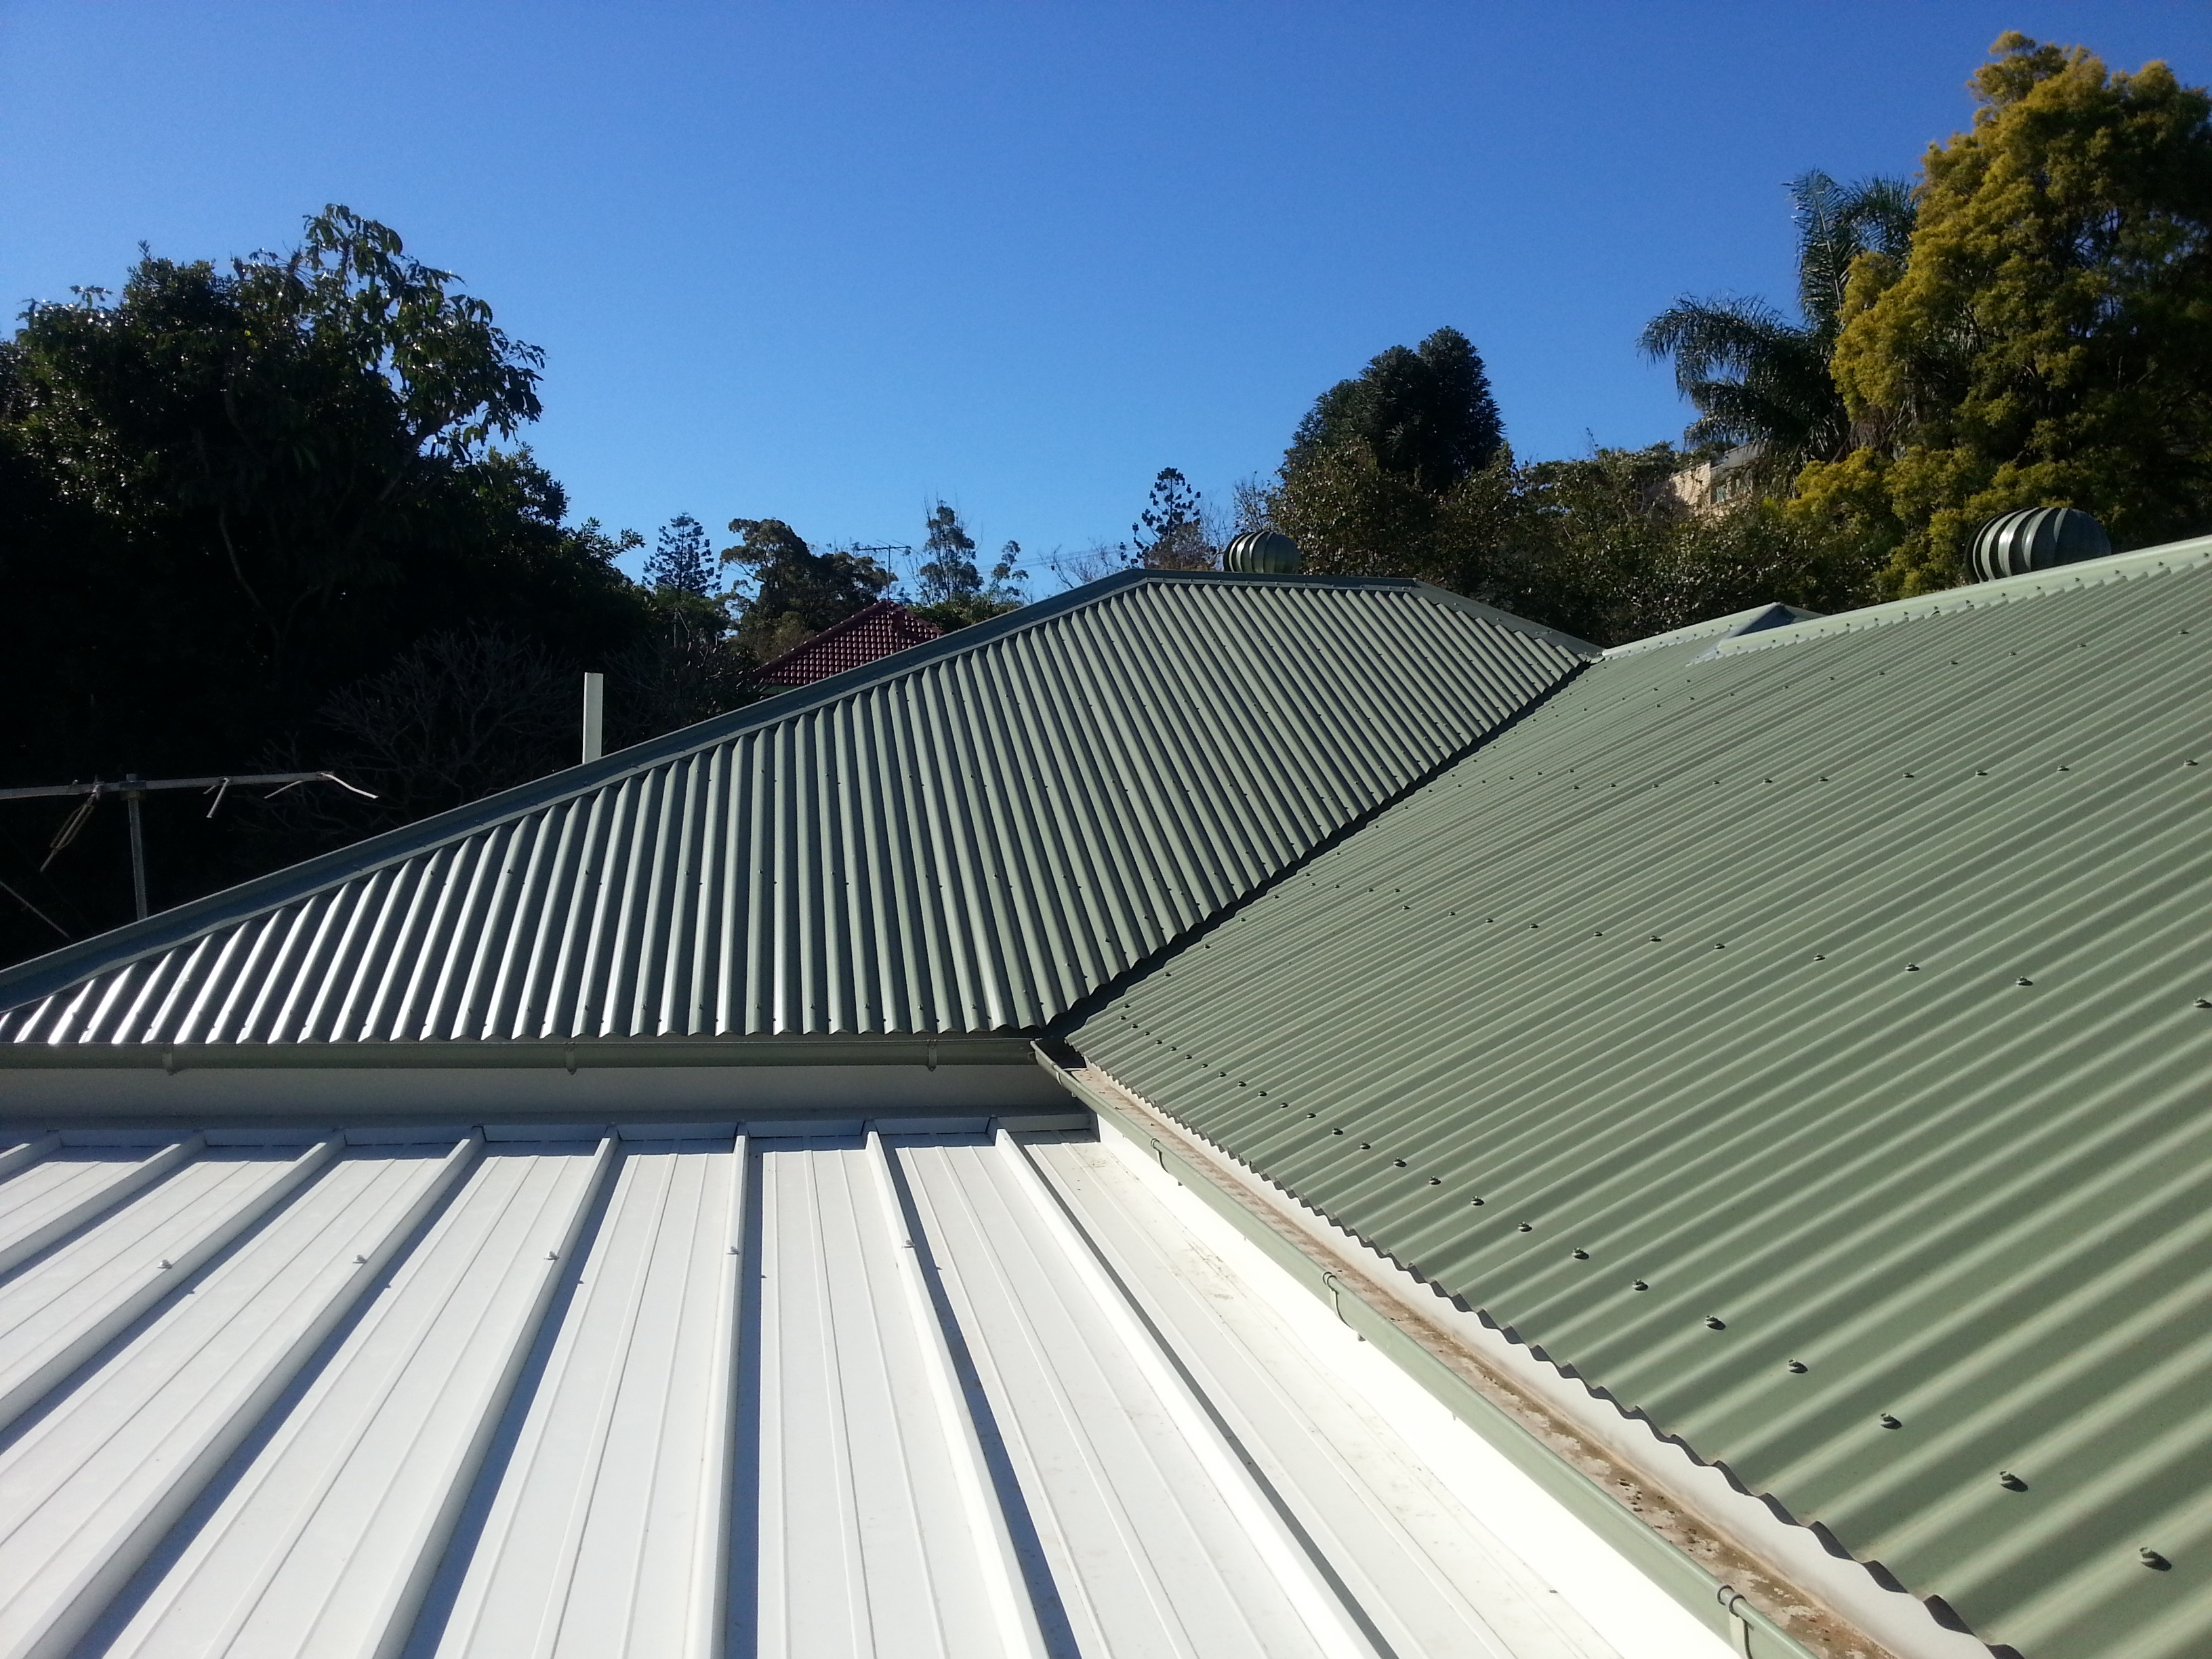 Reroof of the main roof and extension